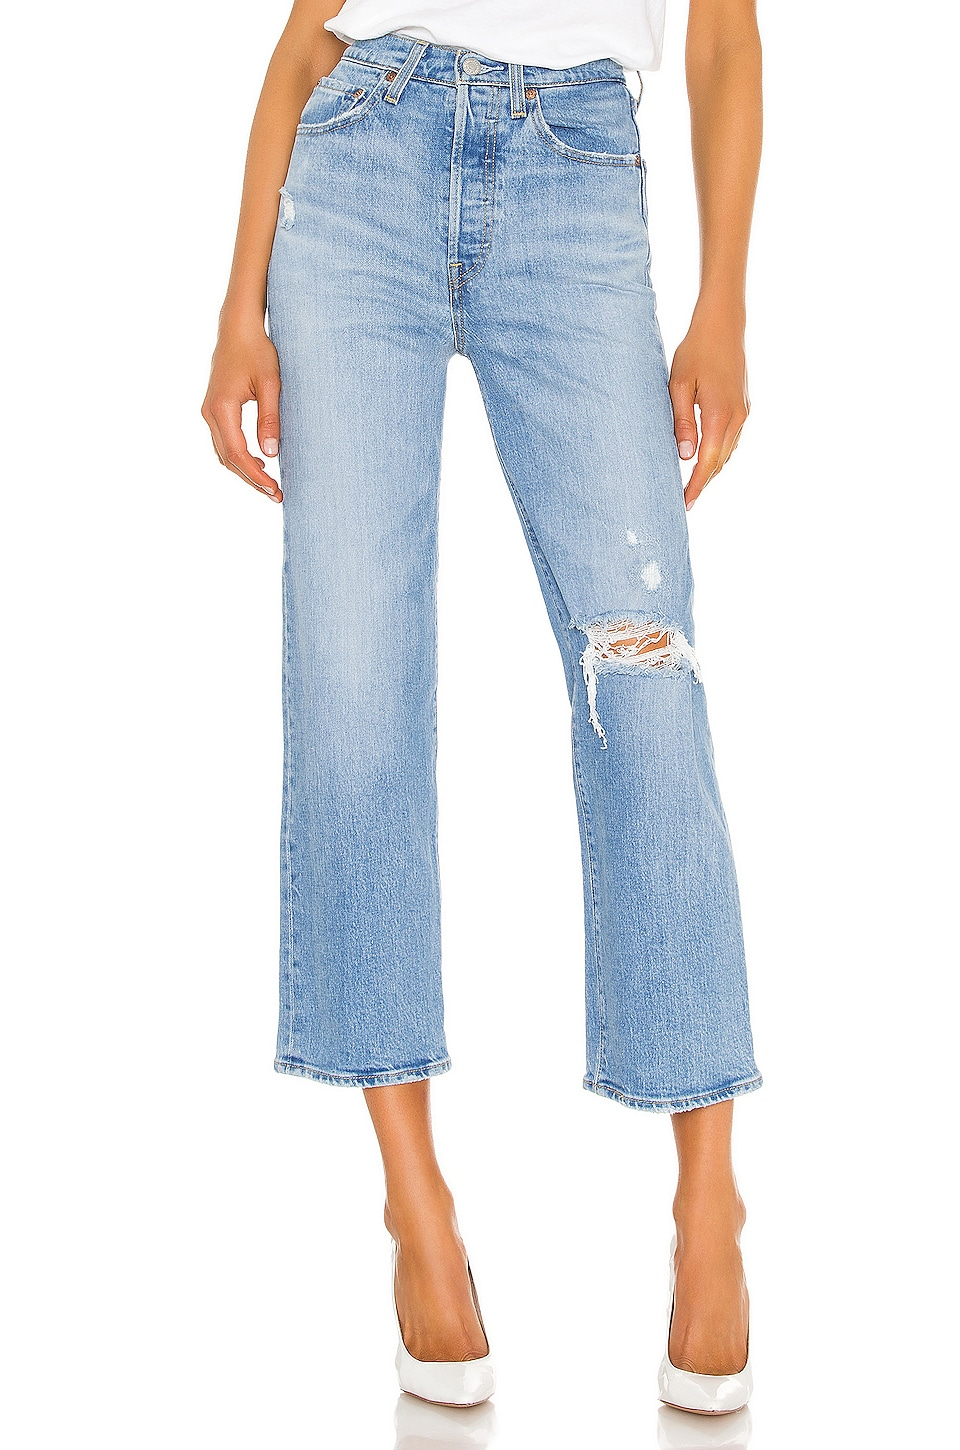 Ribcage Straight Ankle             LEVI'S                                                                                                       CA$ 139.34 10